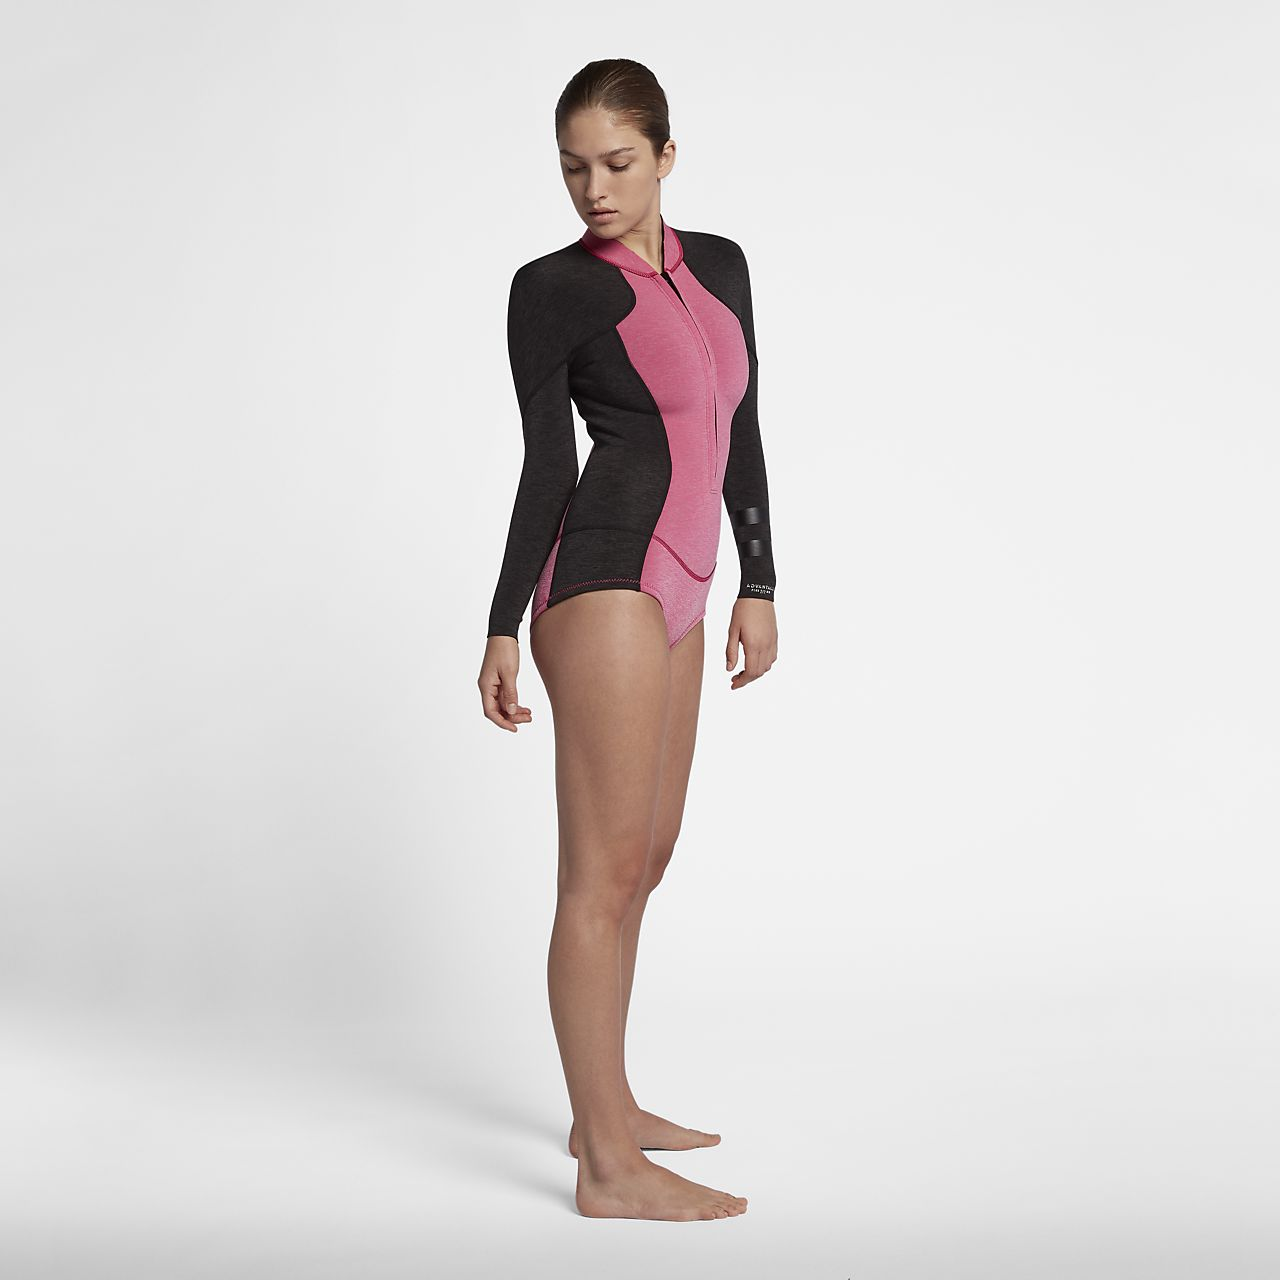 4f2c2ab2bb Hurley Advantage Plus 2 2mm Springsuit Women s Wetsuit. Nike.com ZA